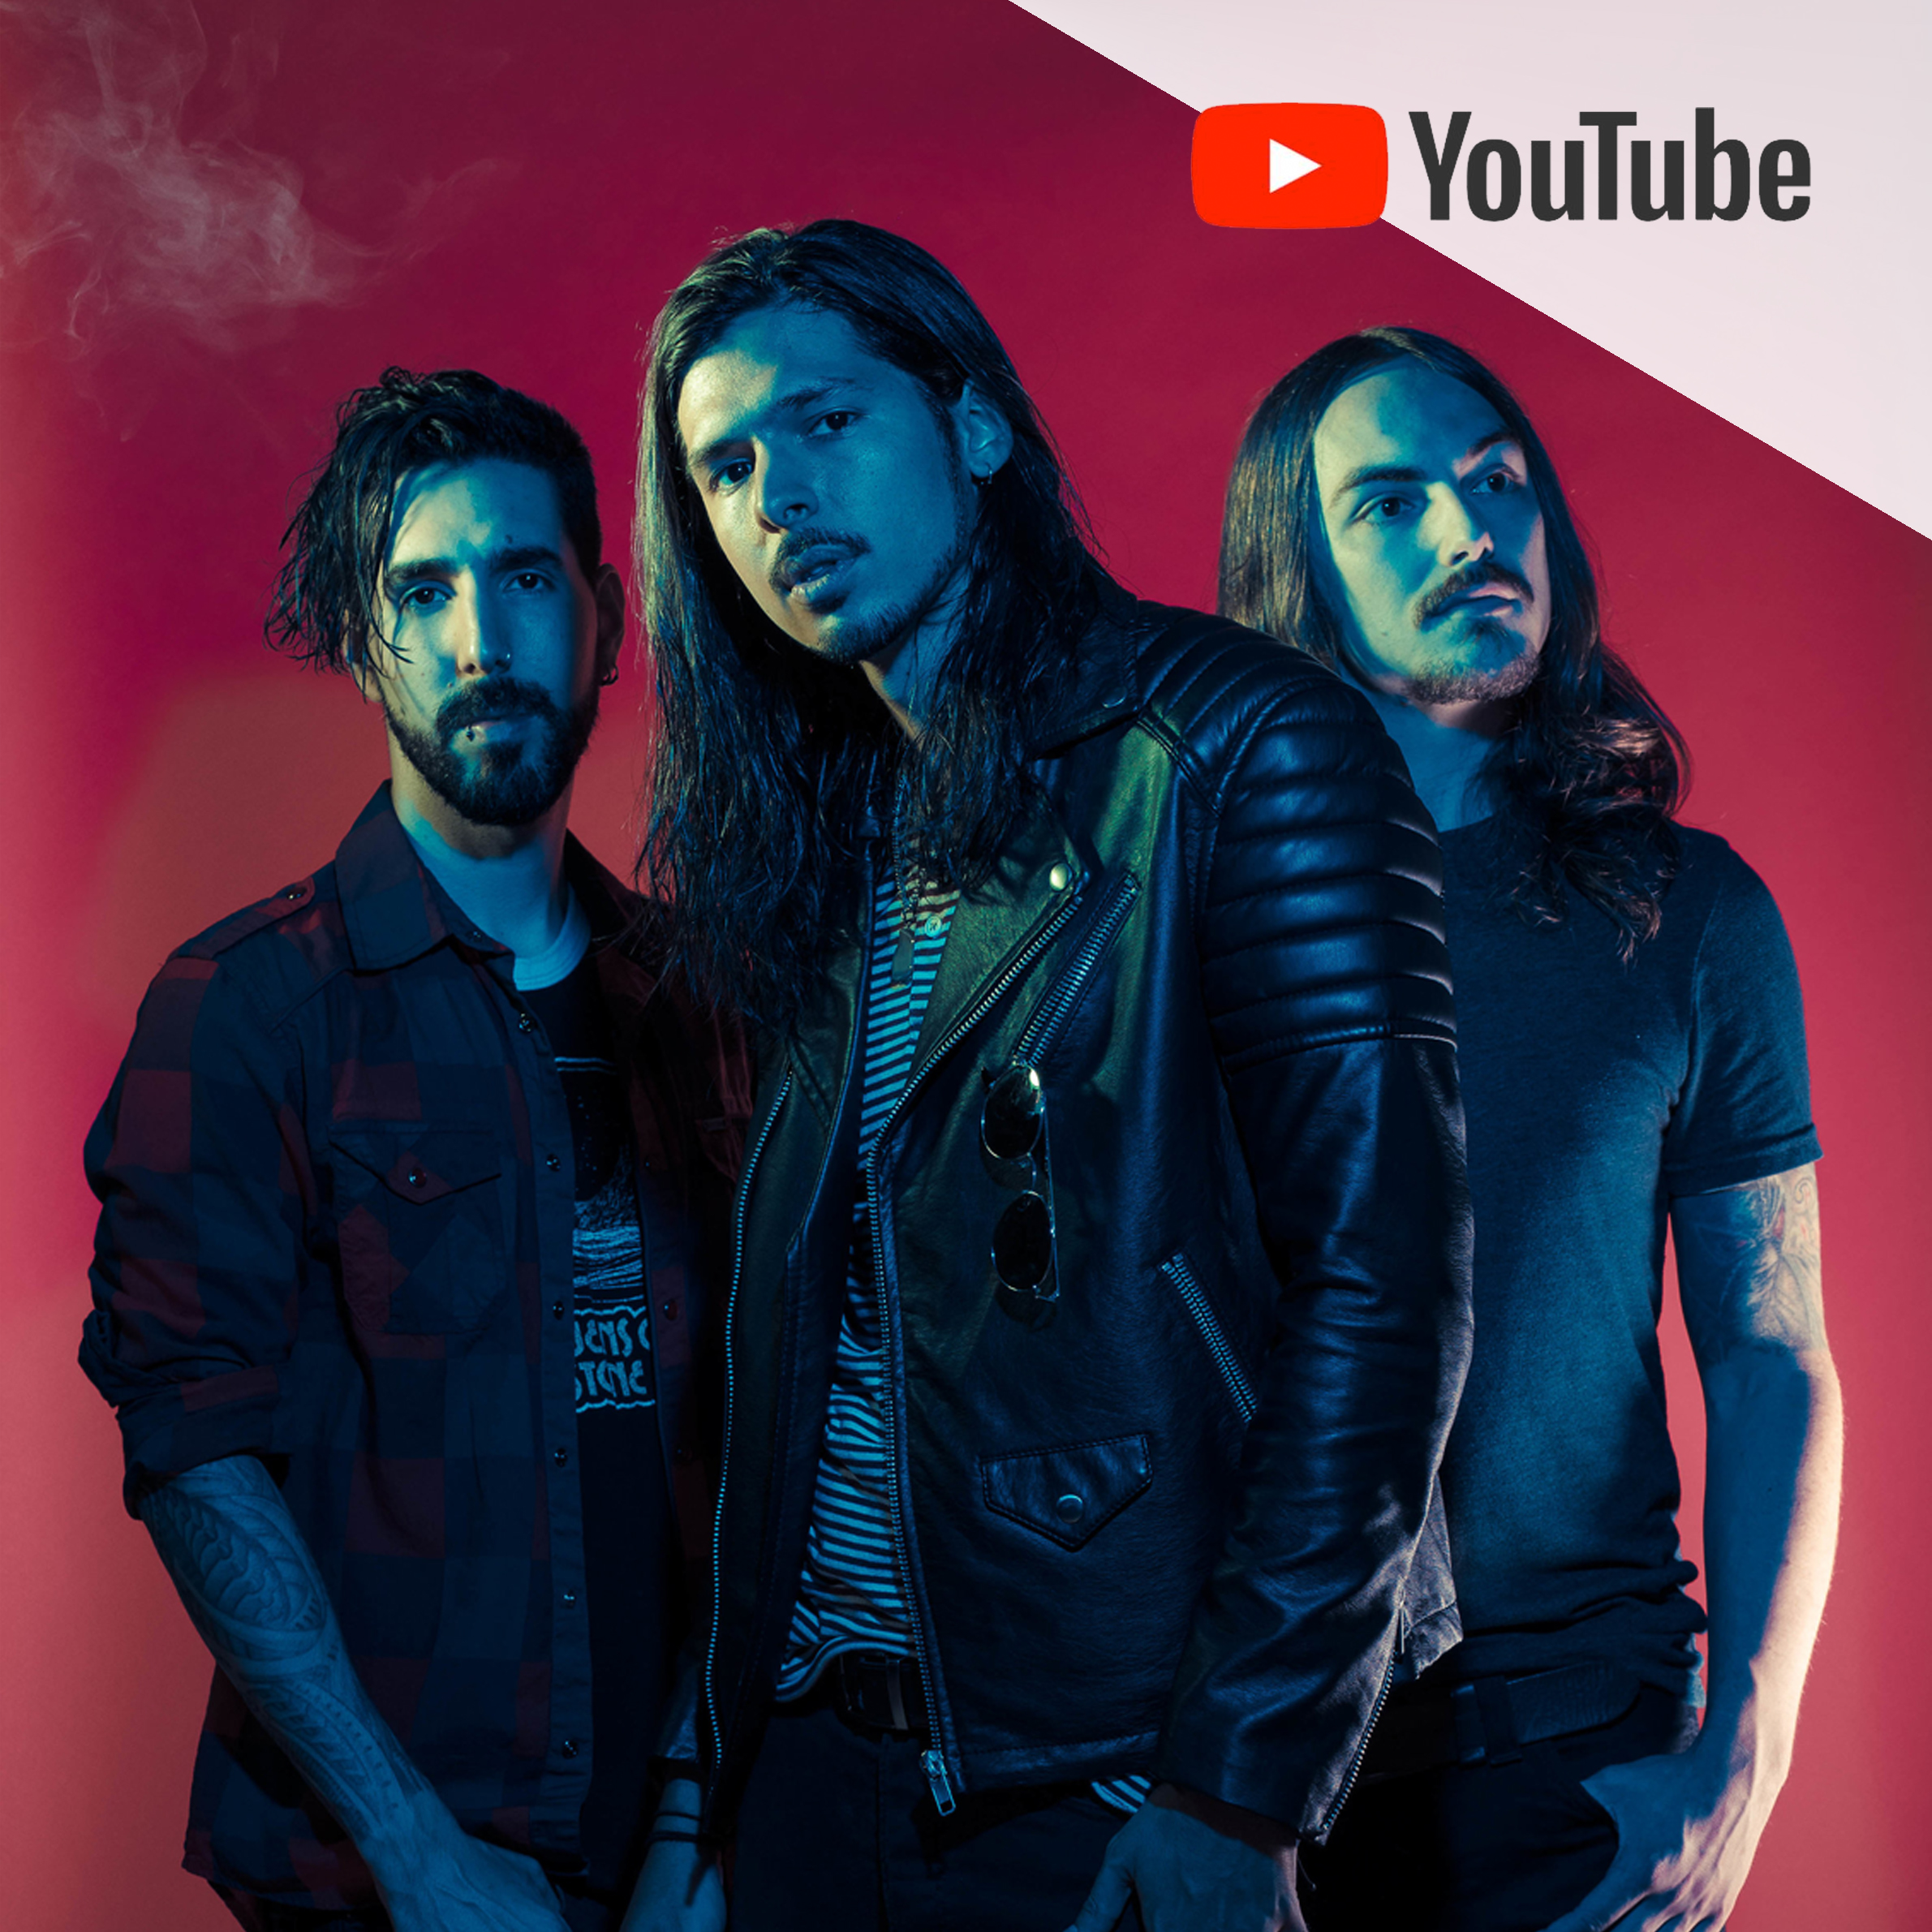 Empty Trail officially hits over 5 Million views on YouTube - March 19, 2019